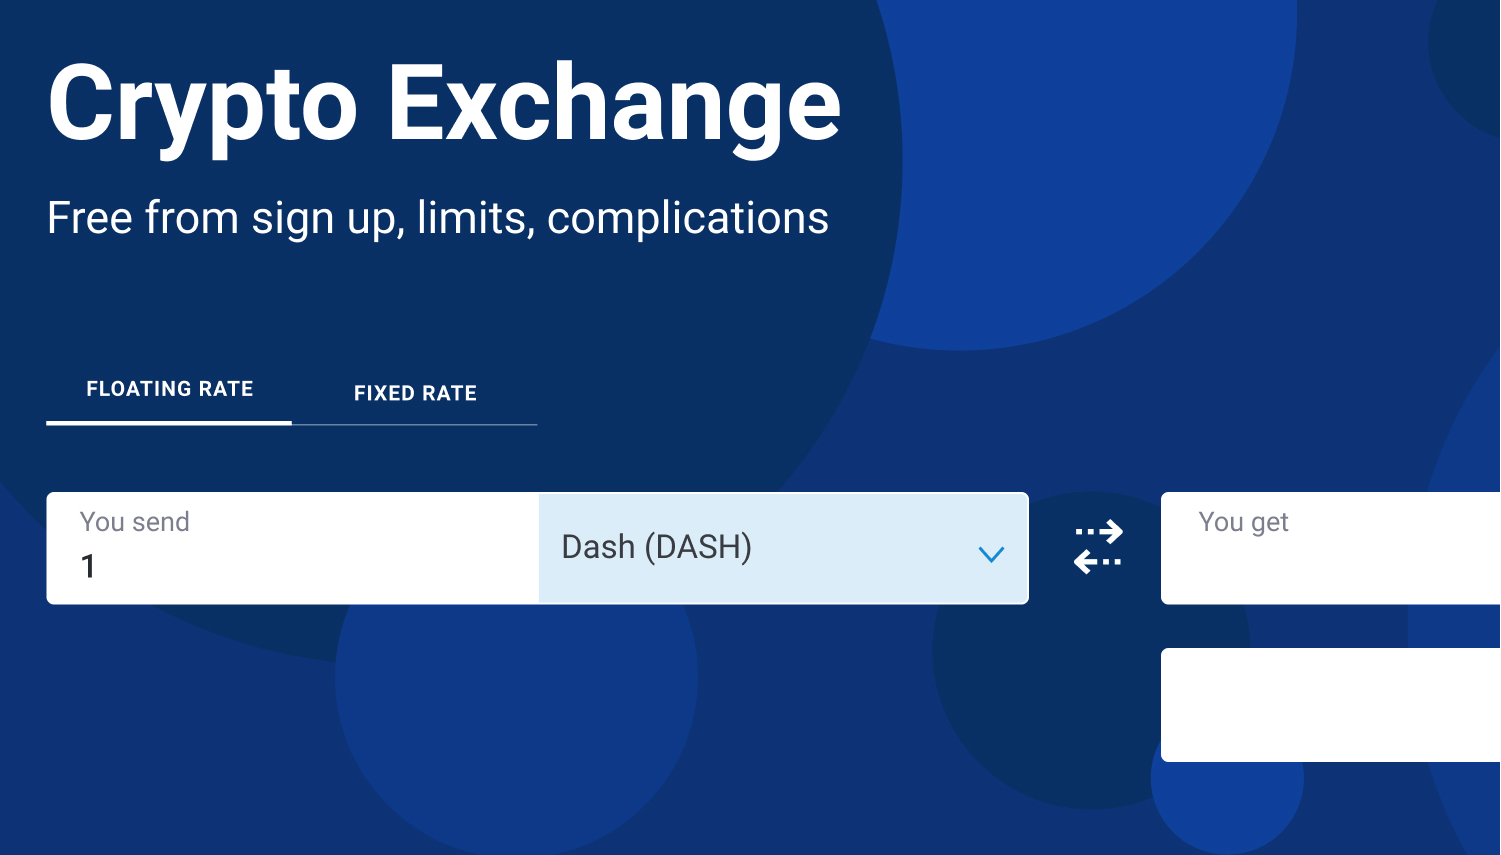 enter the amount of Dash to exchange